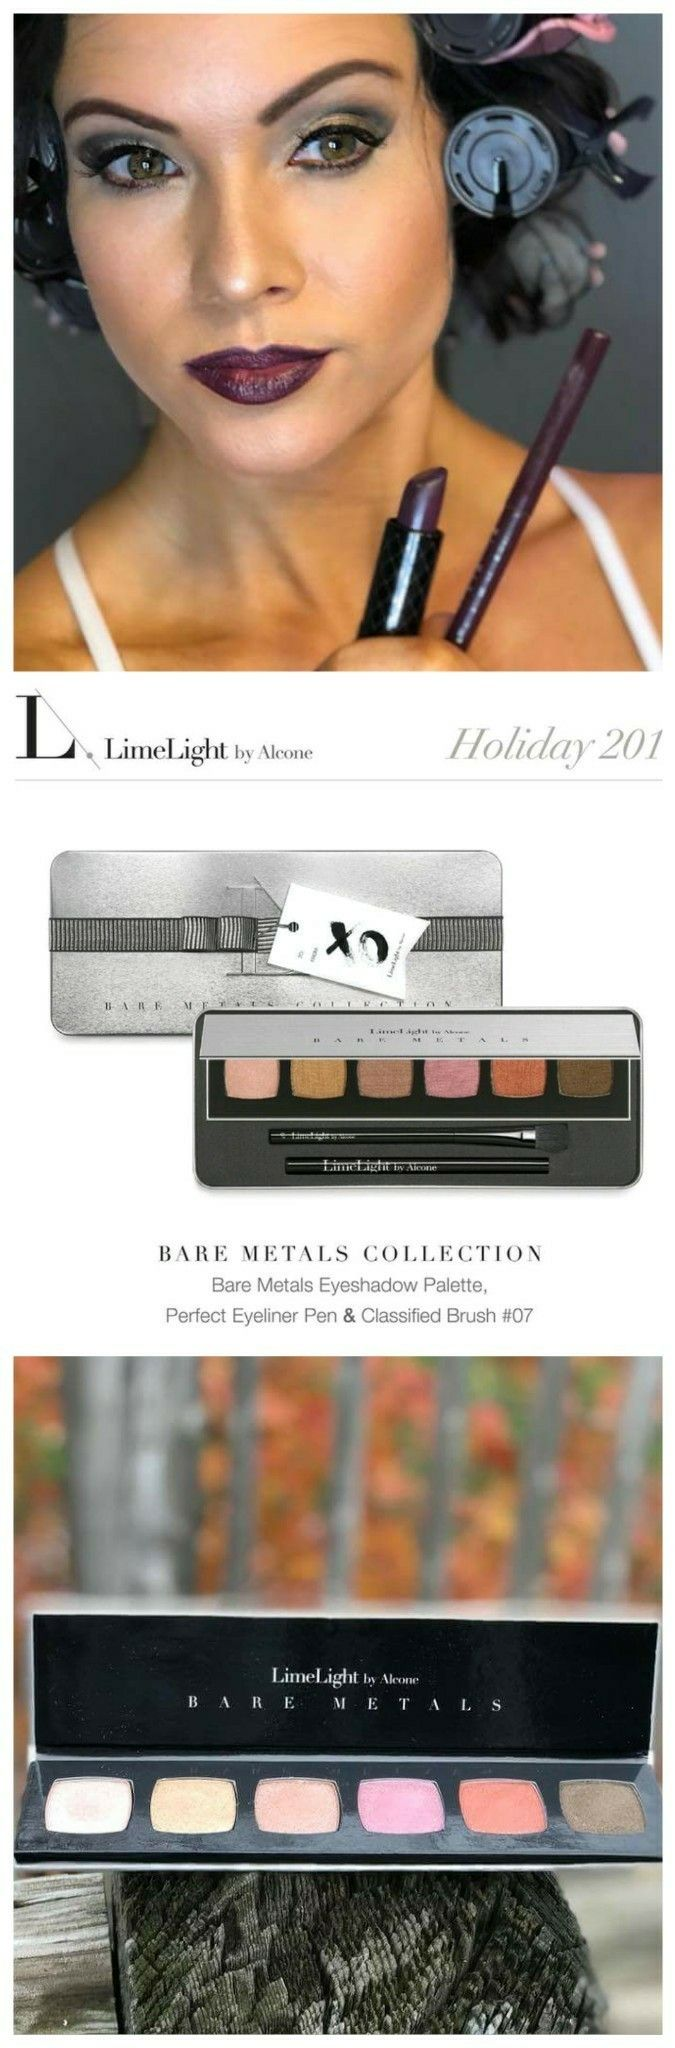 Love Winter Holiday Glam! Bare Metals Eye Shadow Collection from LimeLight by Alcone. Highly pigmented pure Professional makeup. This collection includes our six-shade Bare Metals Eyeshadow Palette, a Large Shadow Brush, and our best-selling Perfect Eyeliner Pen.